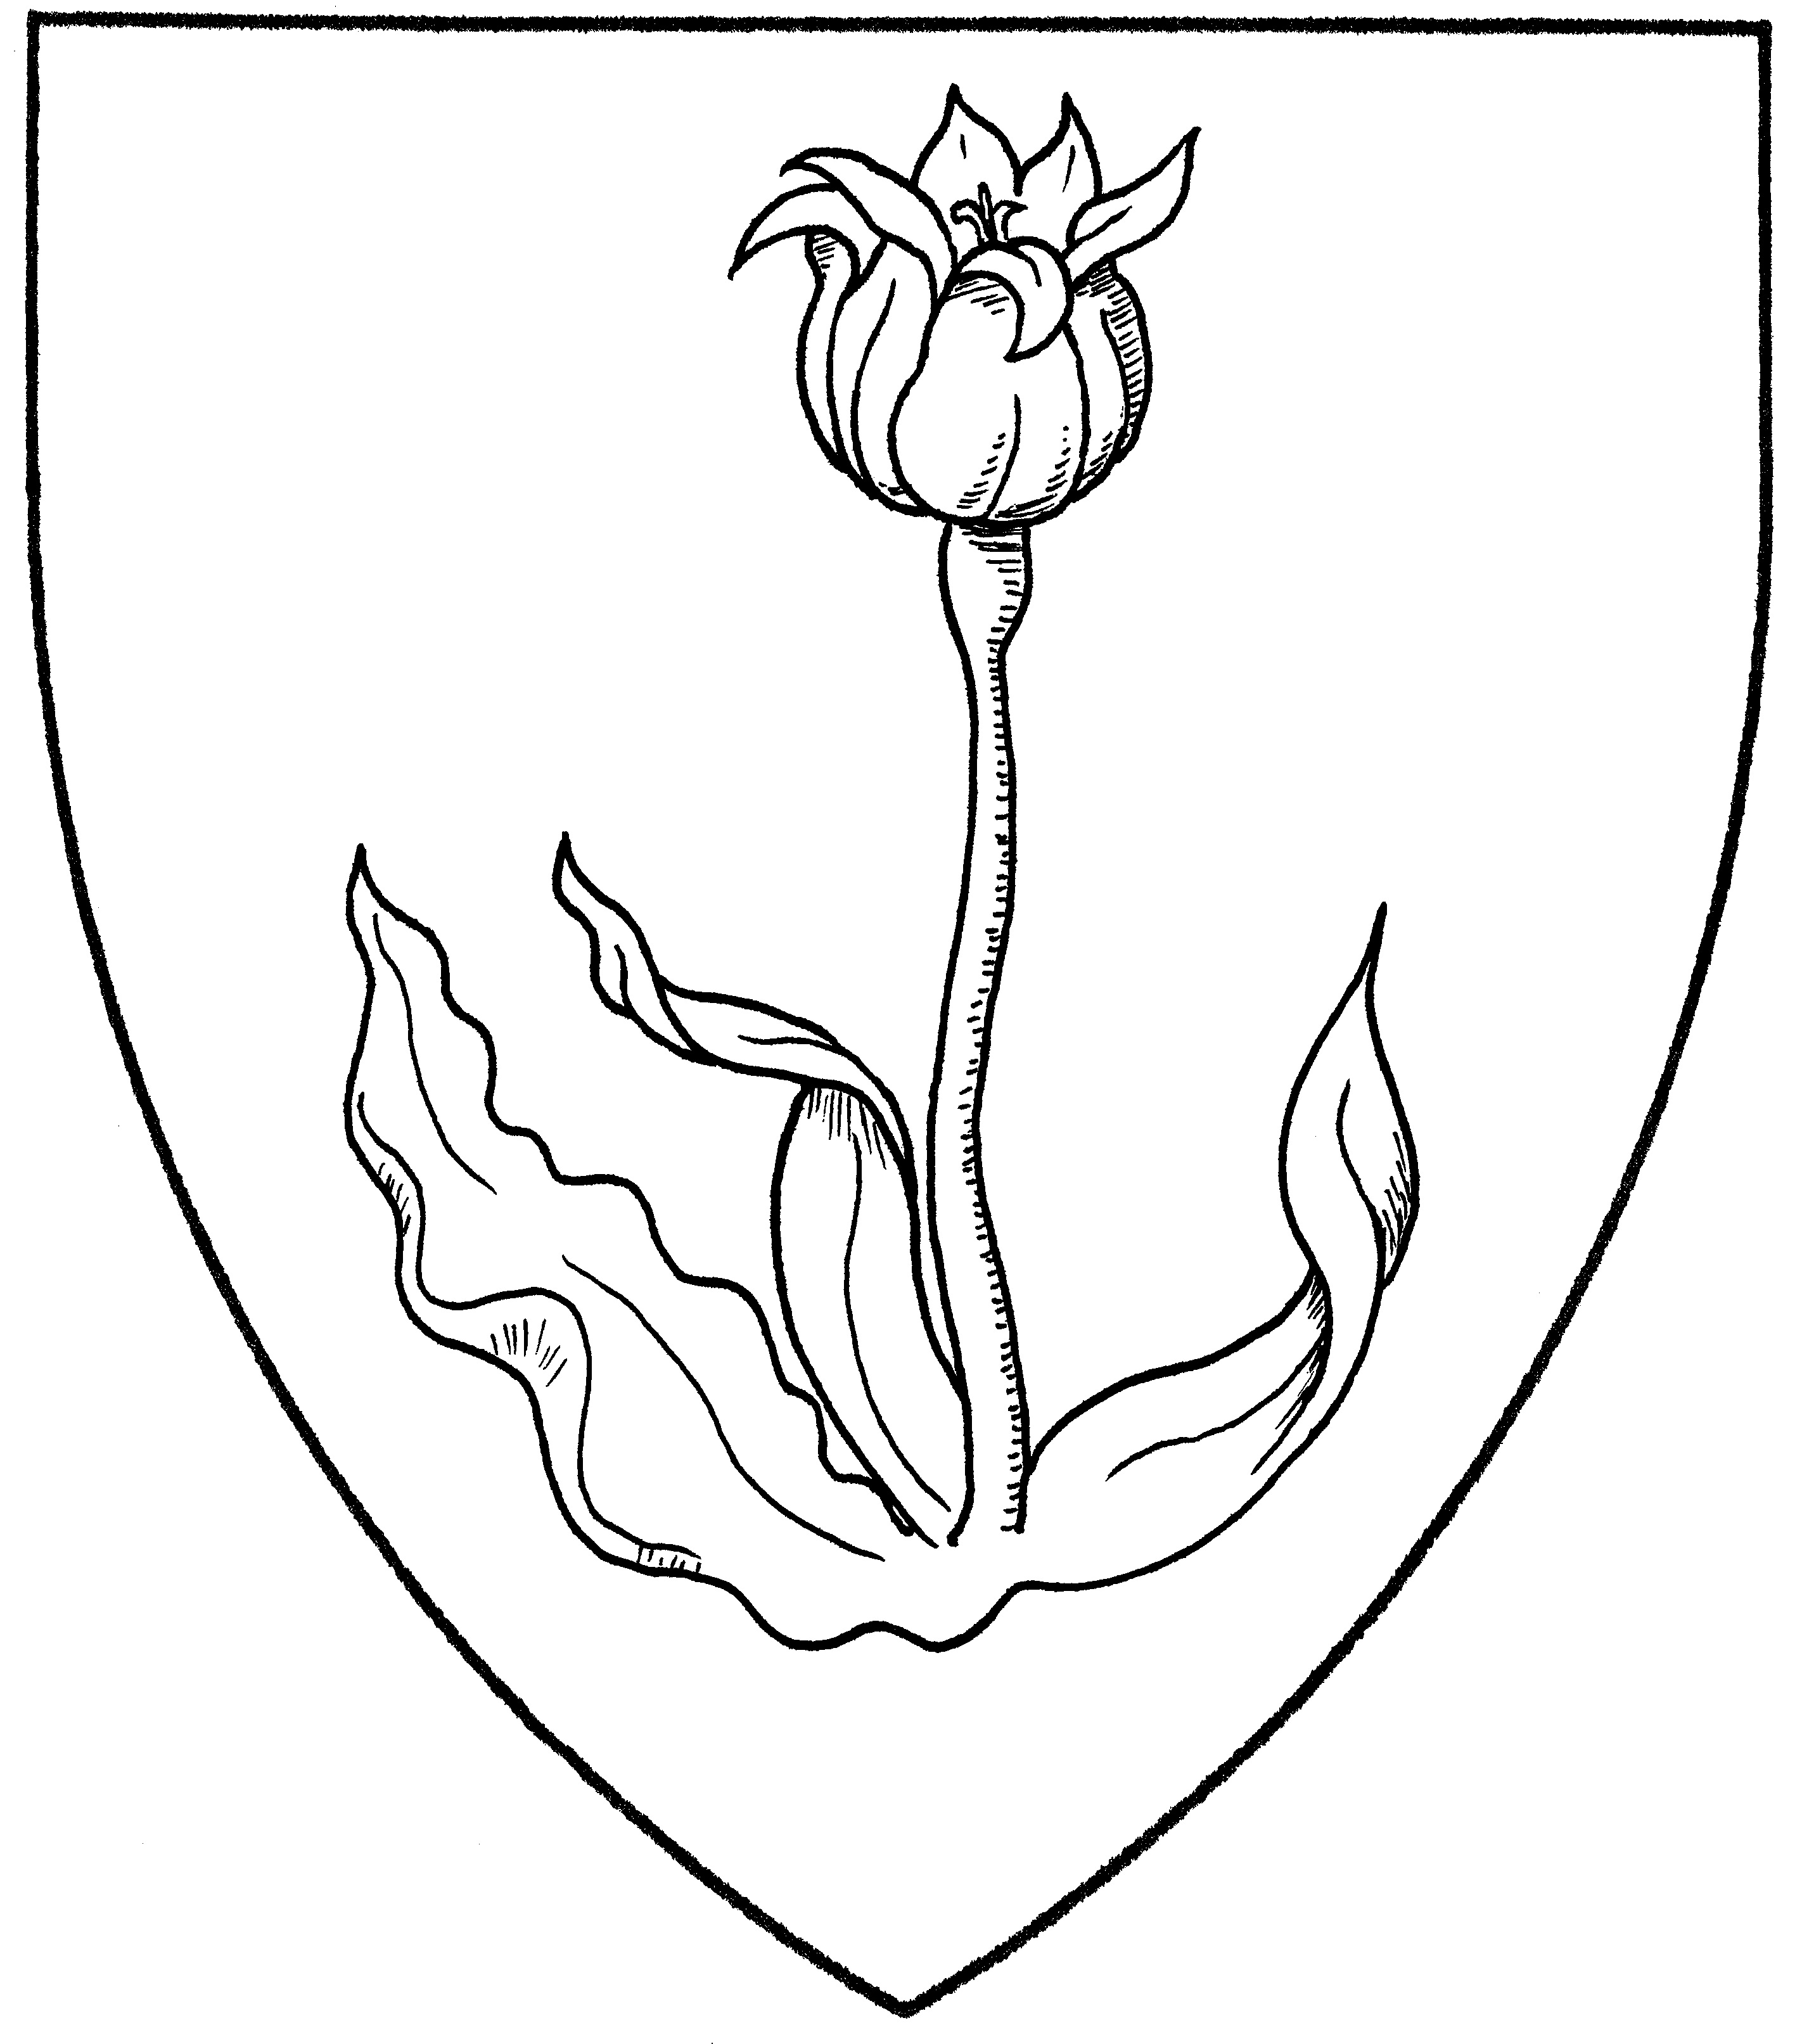 search results for tulip mistholme